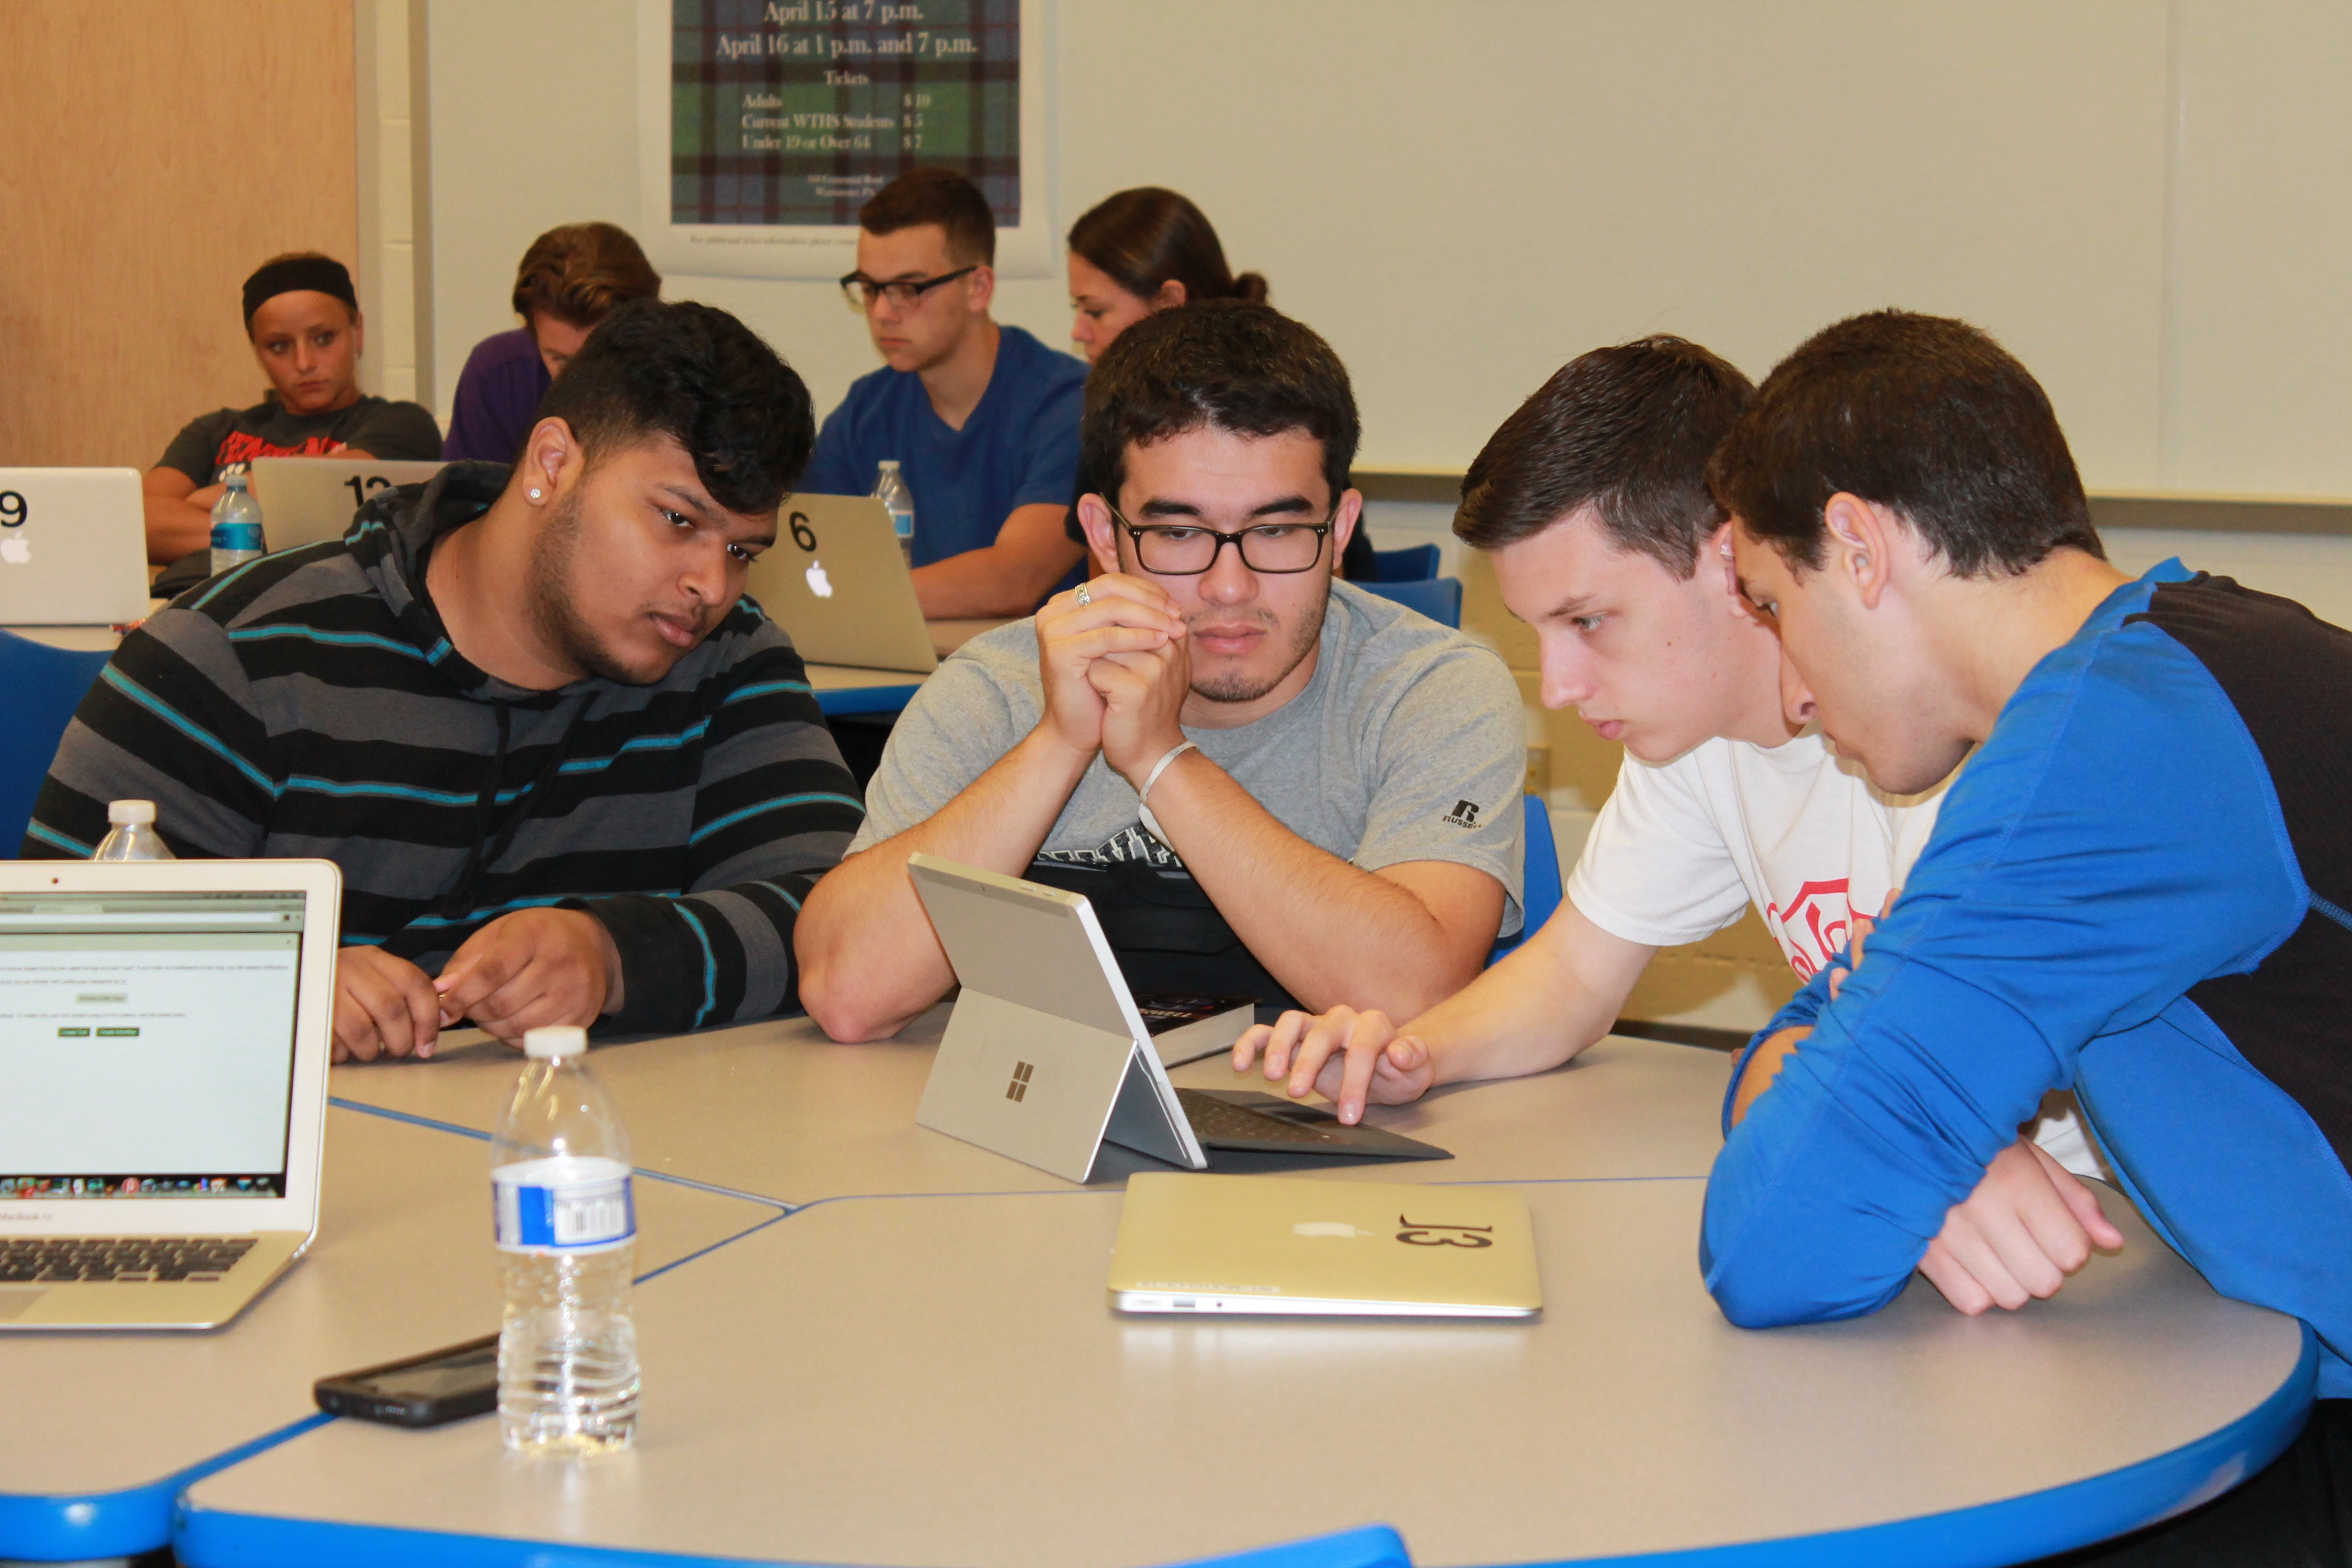 Students working on the Cancer Genomics Cloud in the high school genomics class